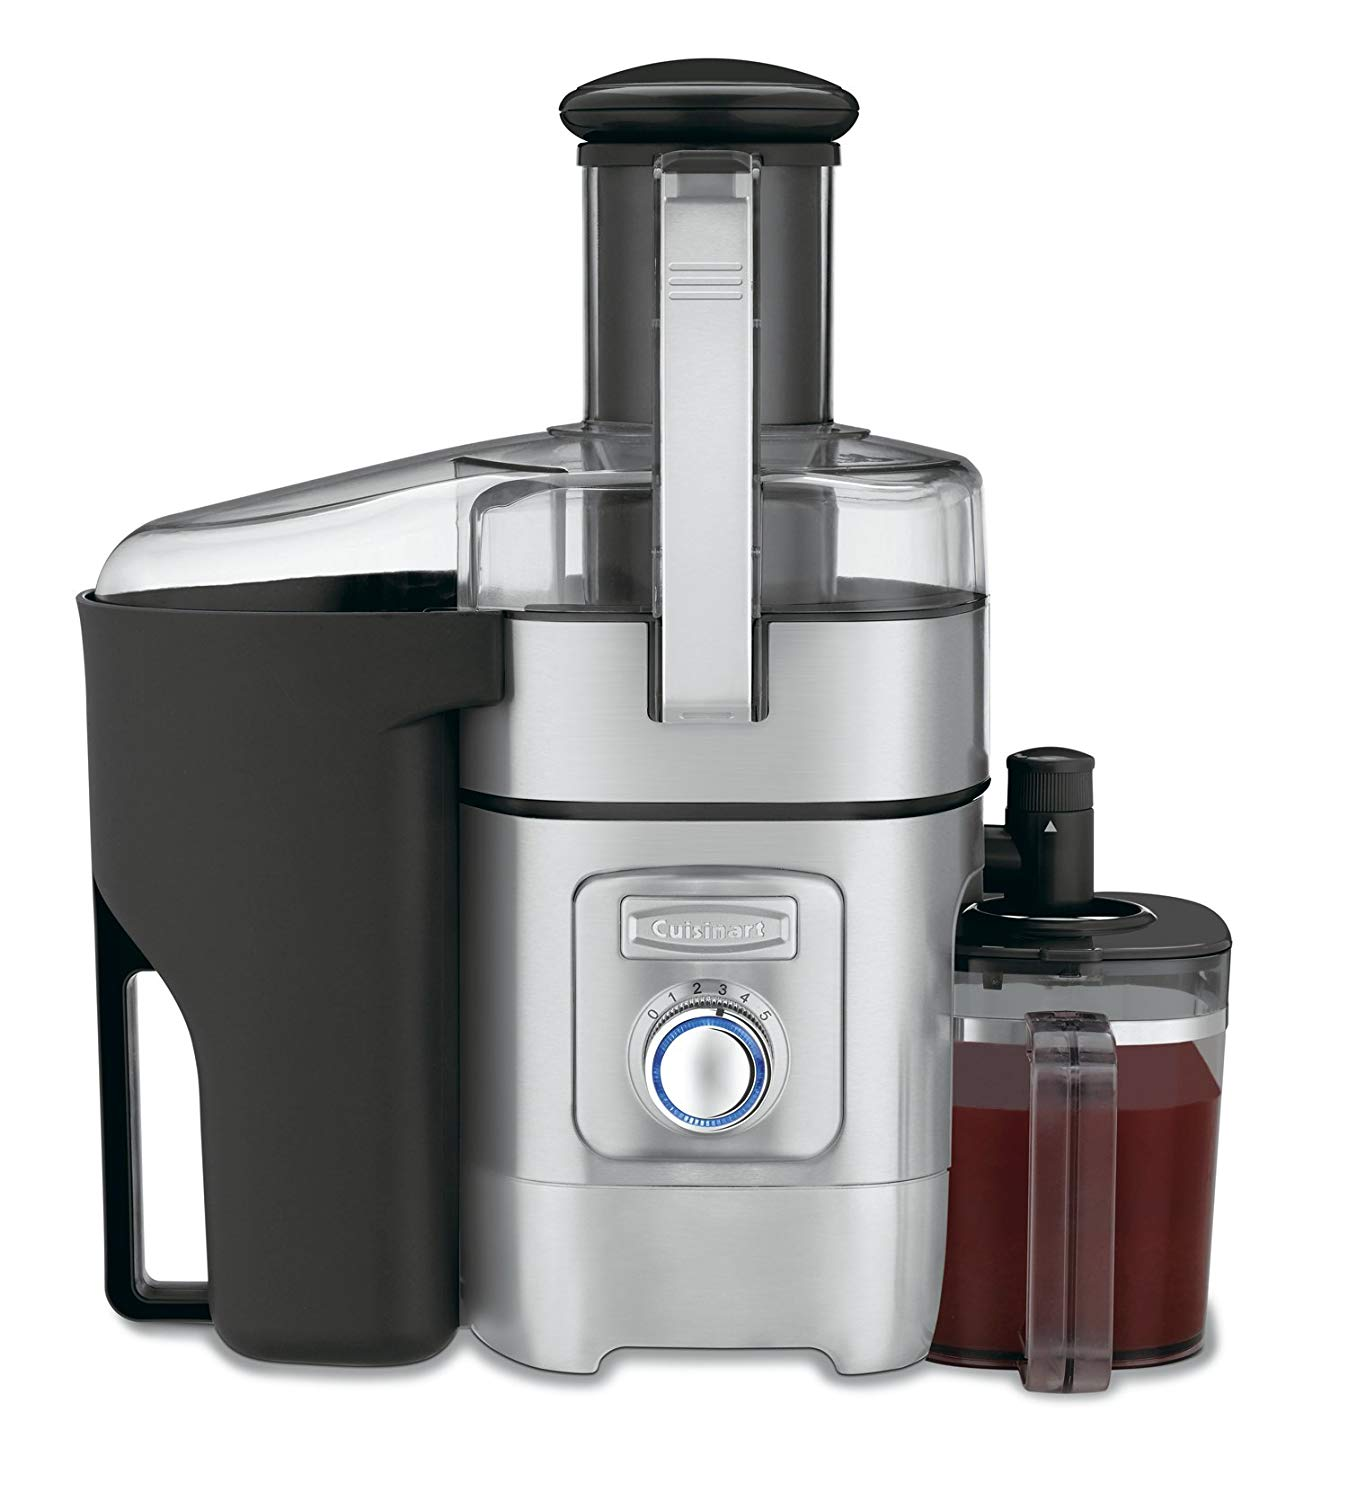 Cuisinart Masticating Juicer